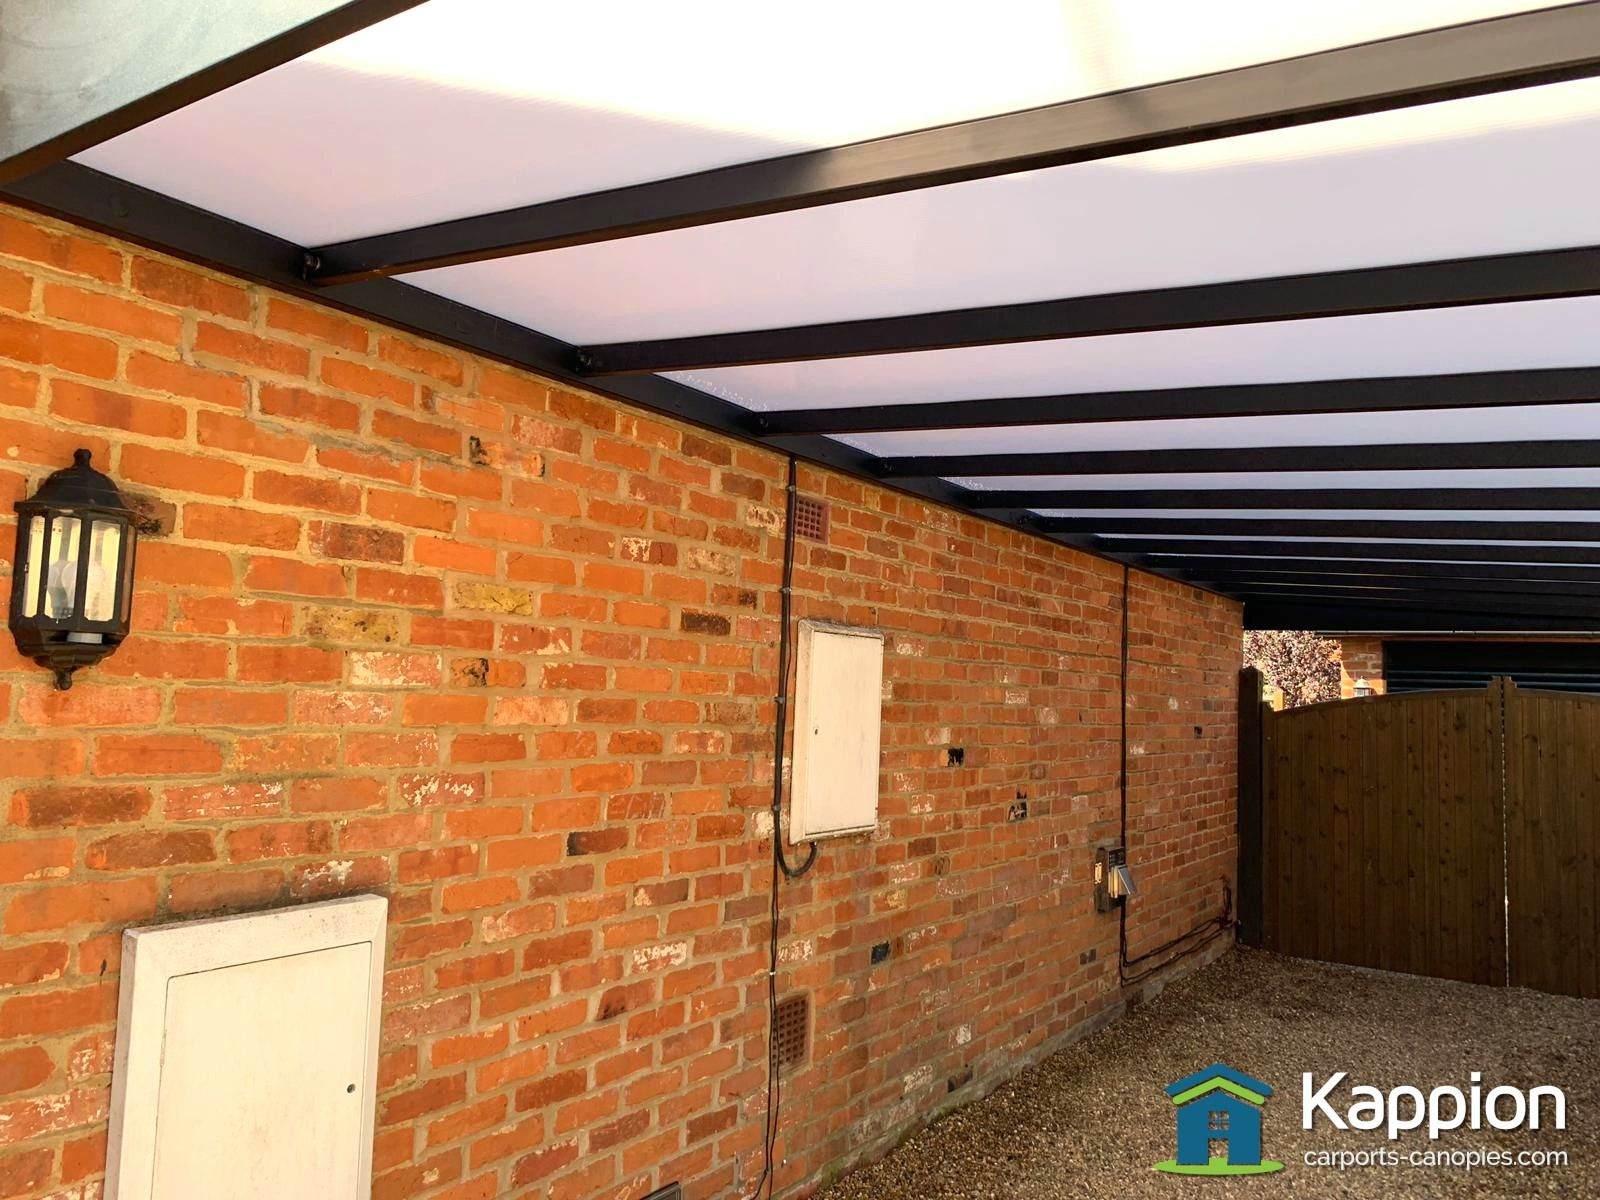 Carport Europort installed in Surrey (With images